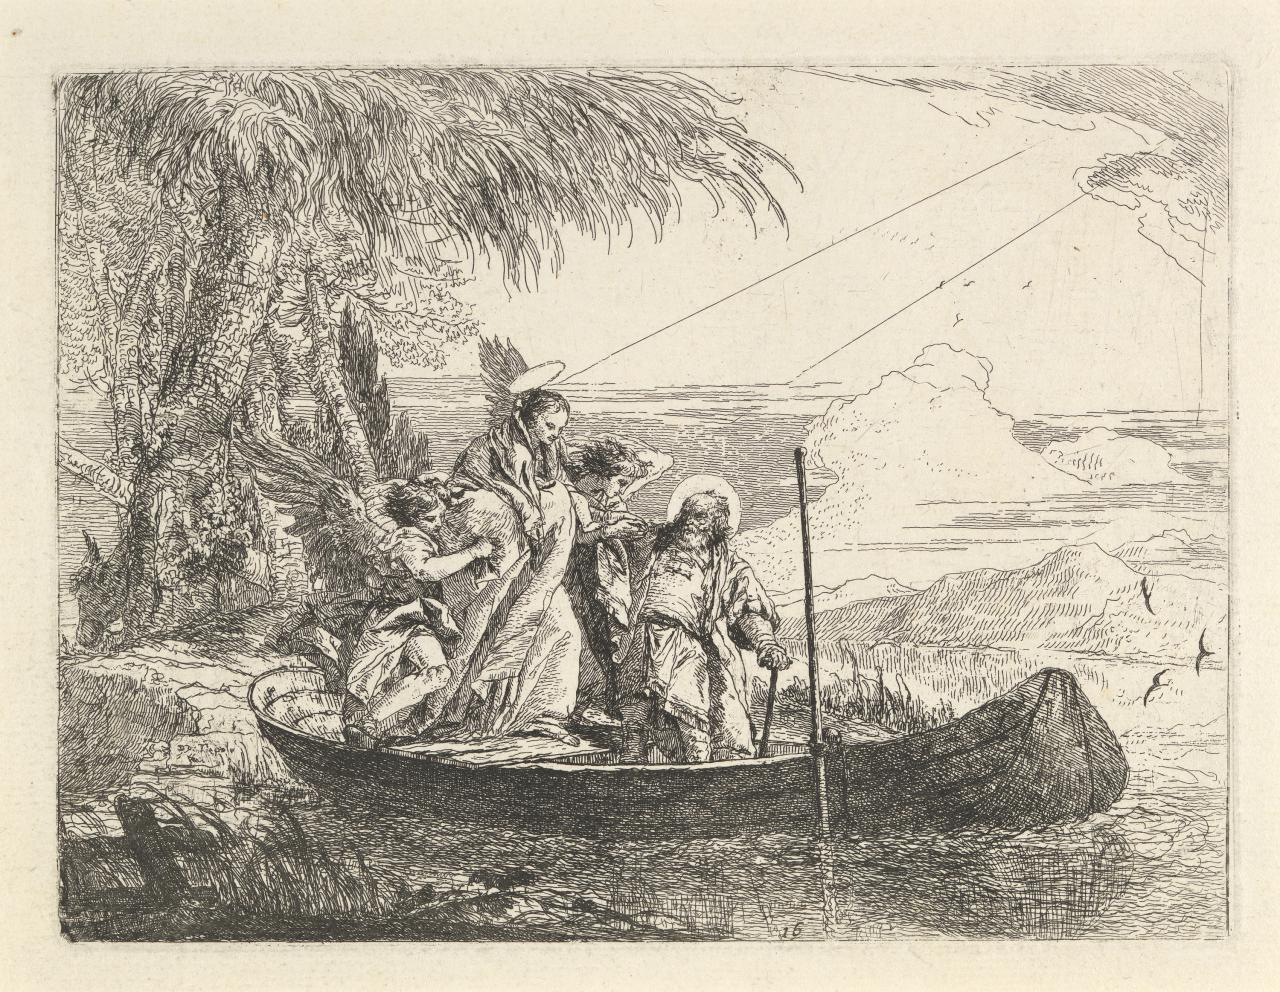 The Madonna, Child and Angels entering the boat (Flight into Egypt)